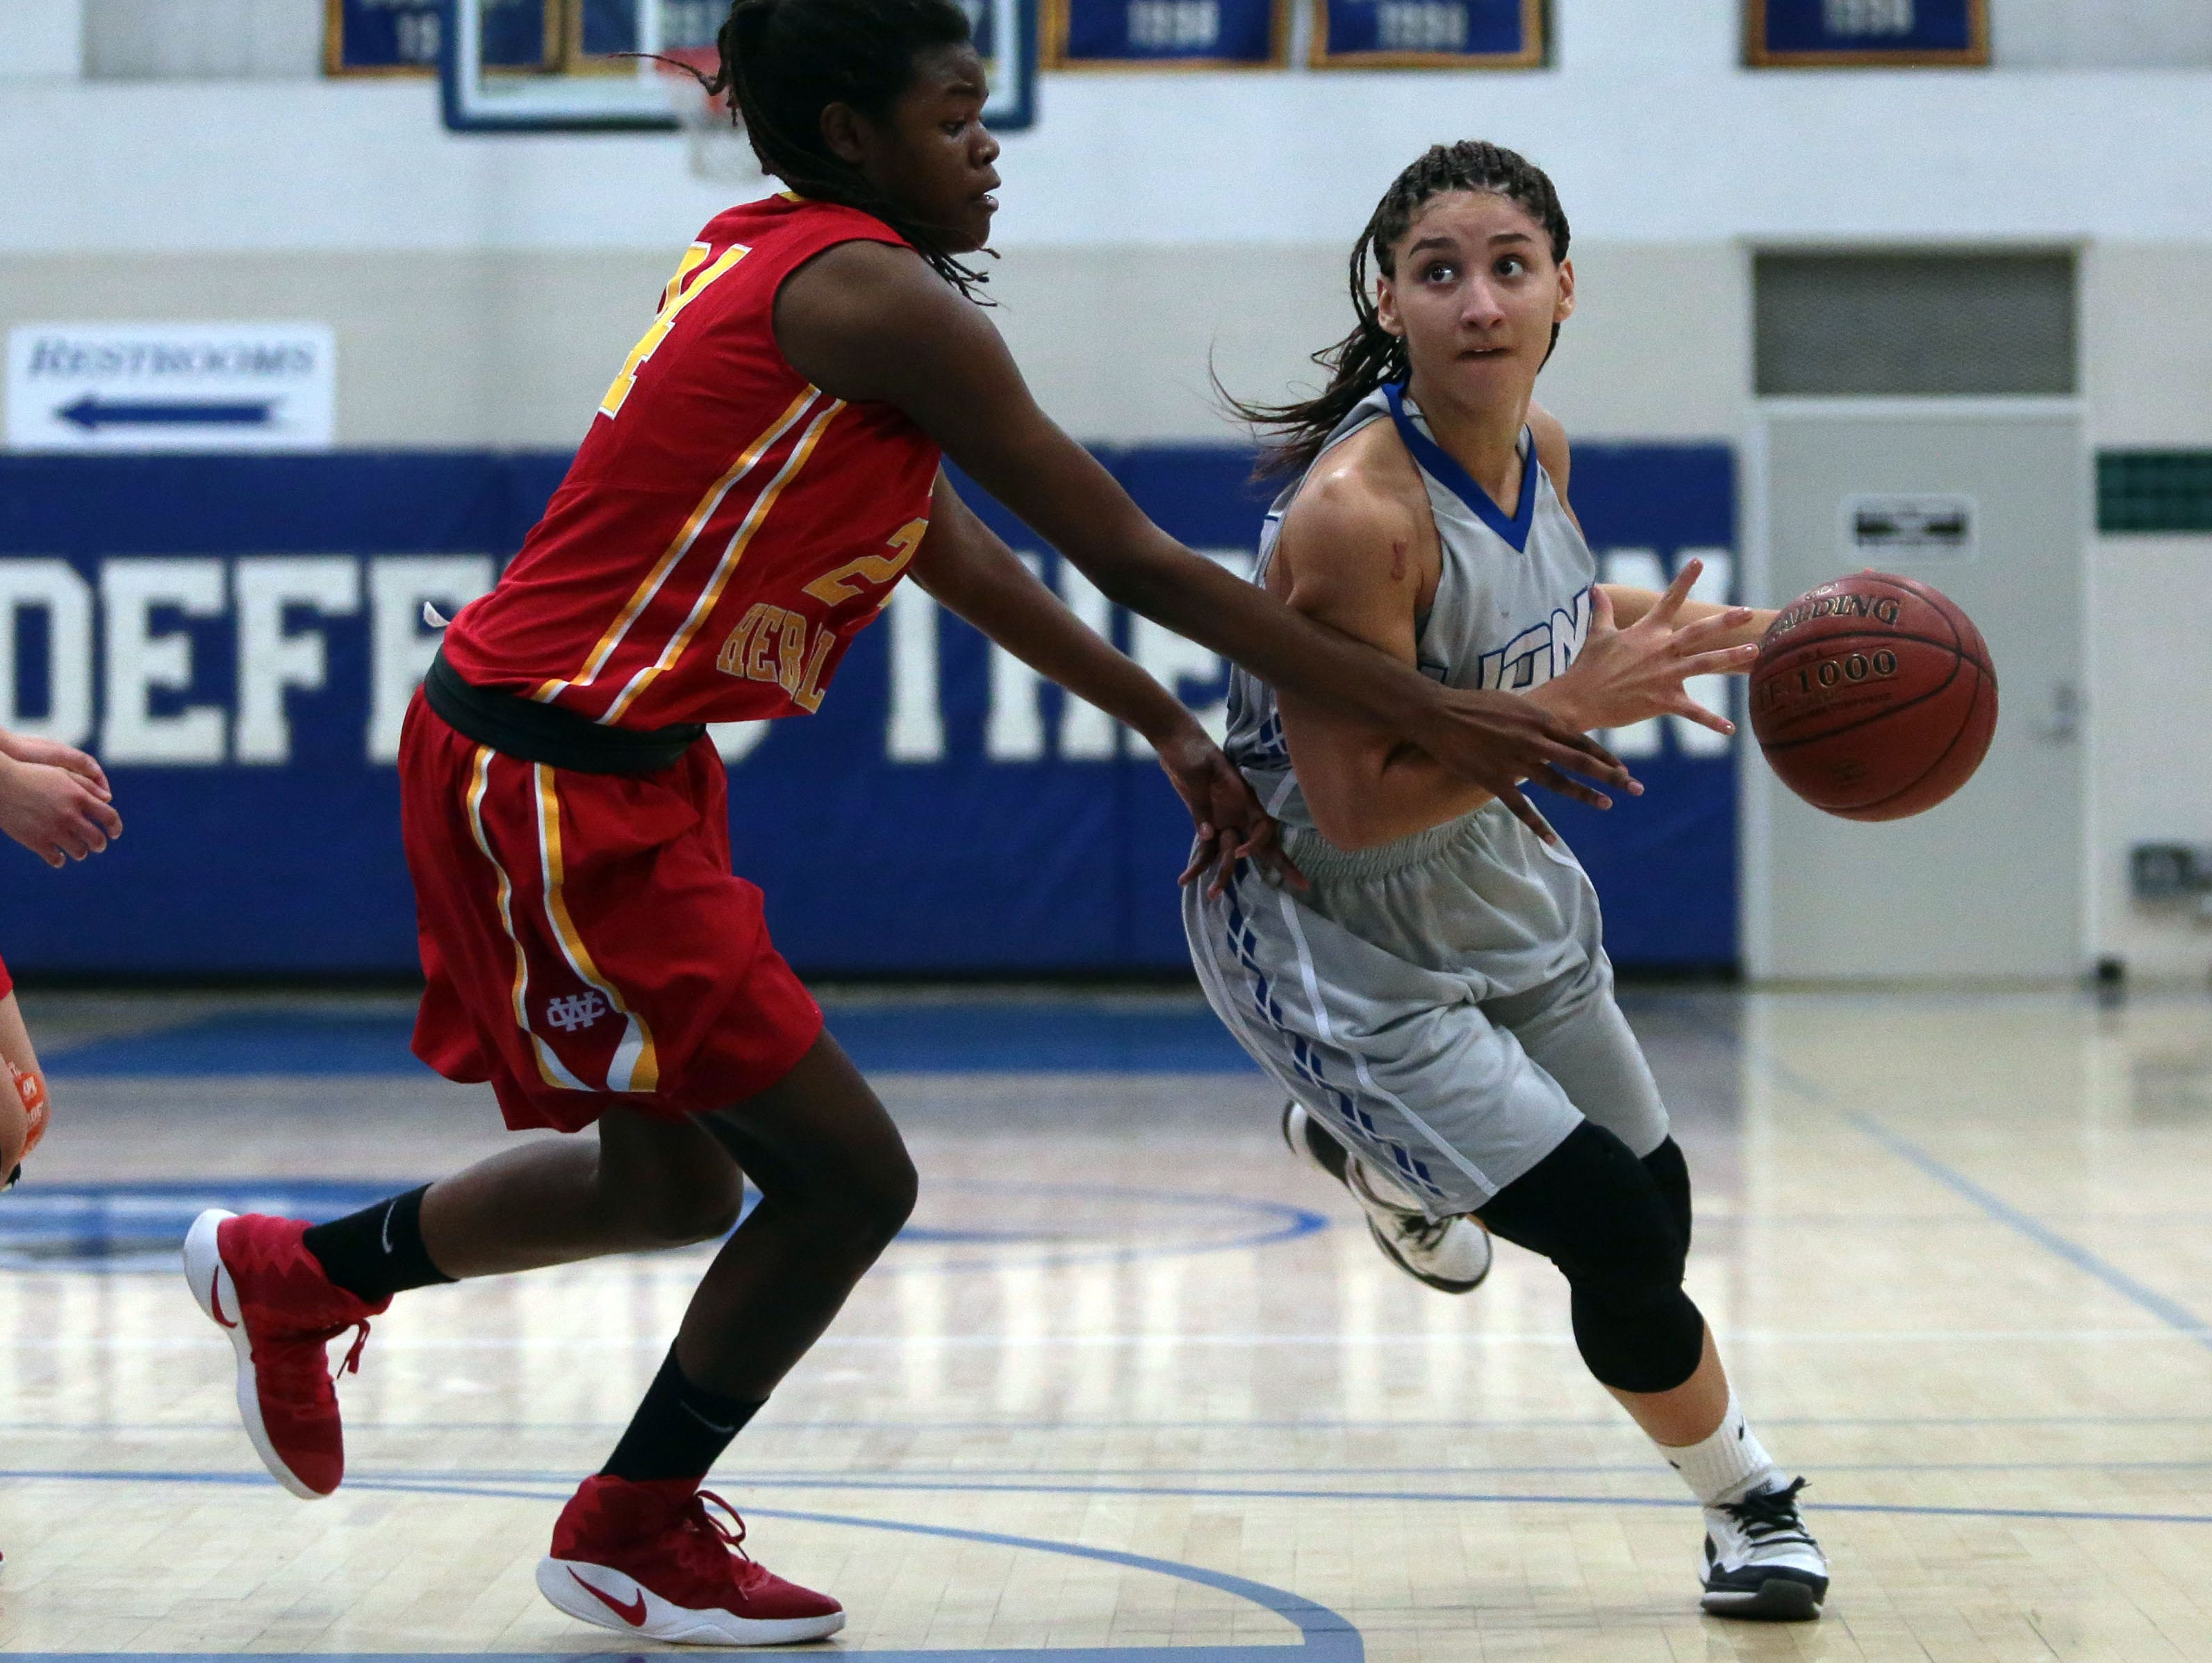 Cathedral City's Le'Anna Broom moves pass Whittier Christian defenders on Saturday, February 18, 2017 in Cathedral City.